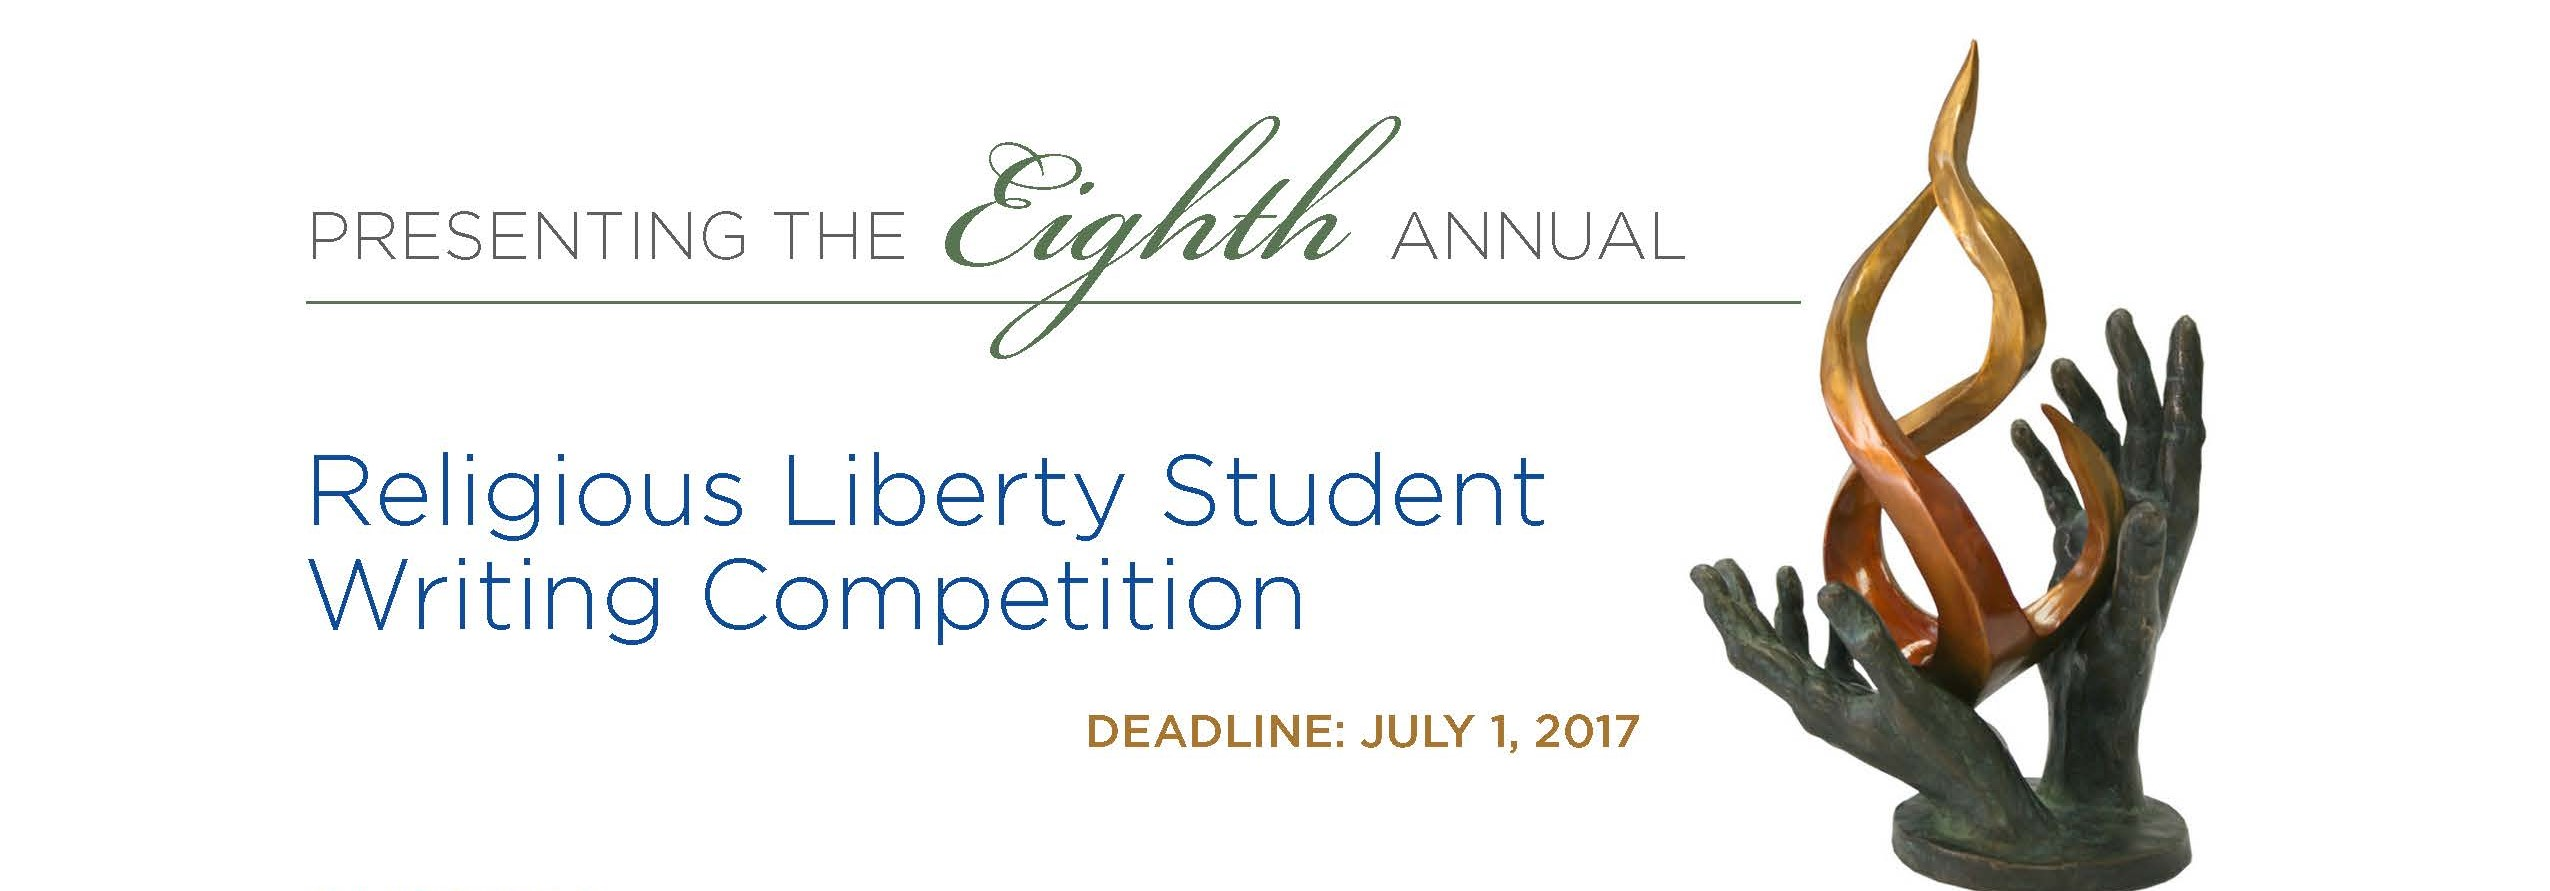 Image for The Eighth Annual Religious Liberty Student Writing Competition